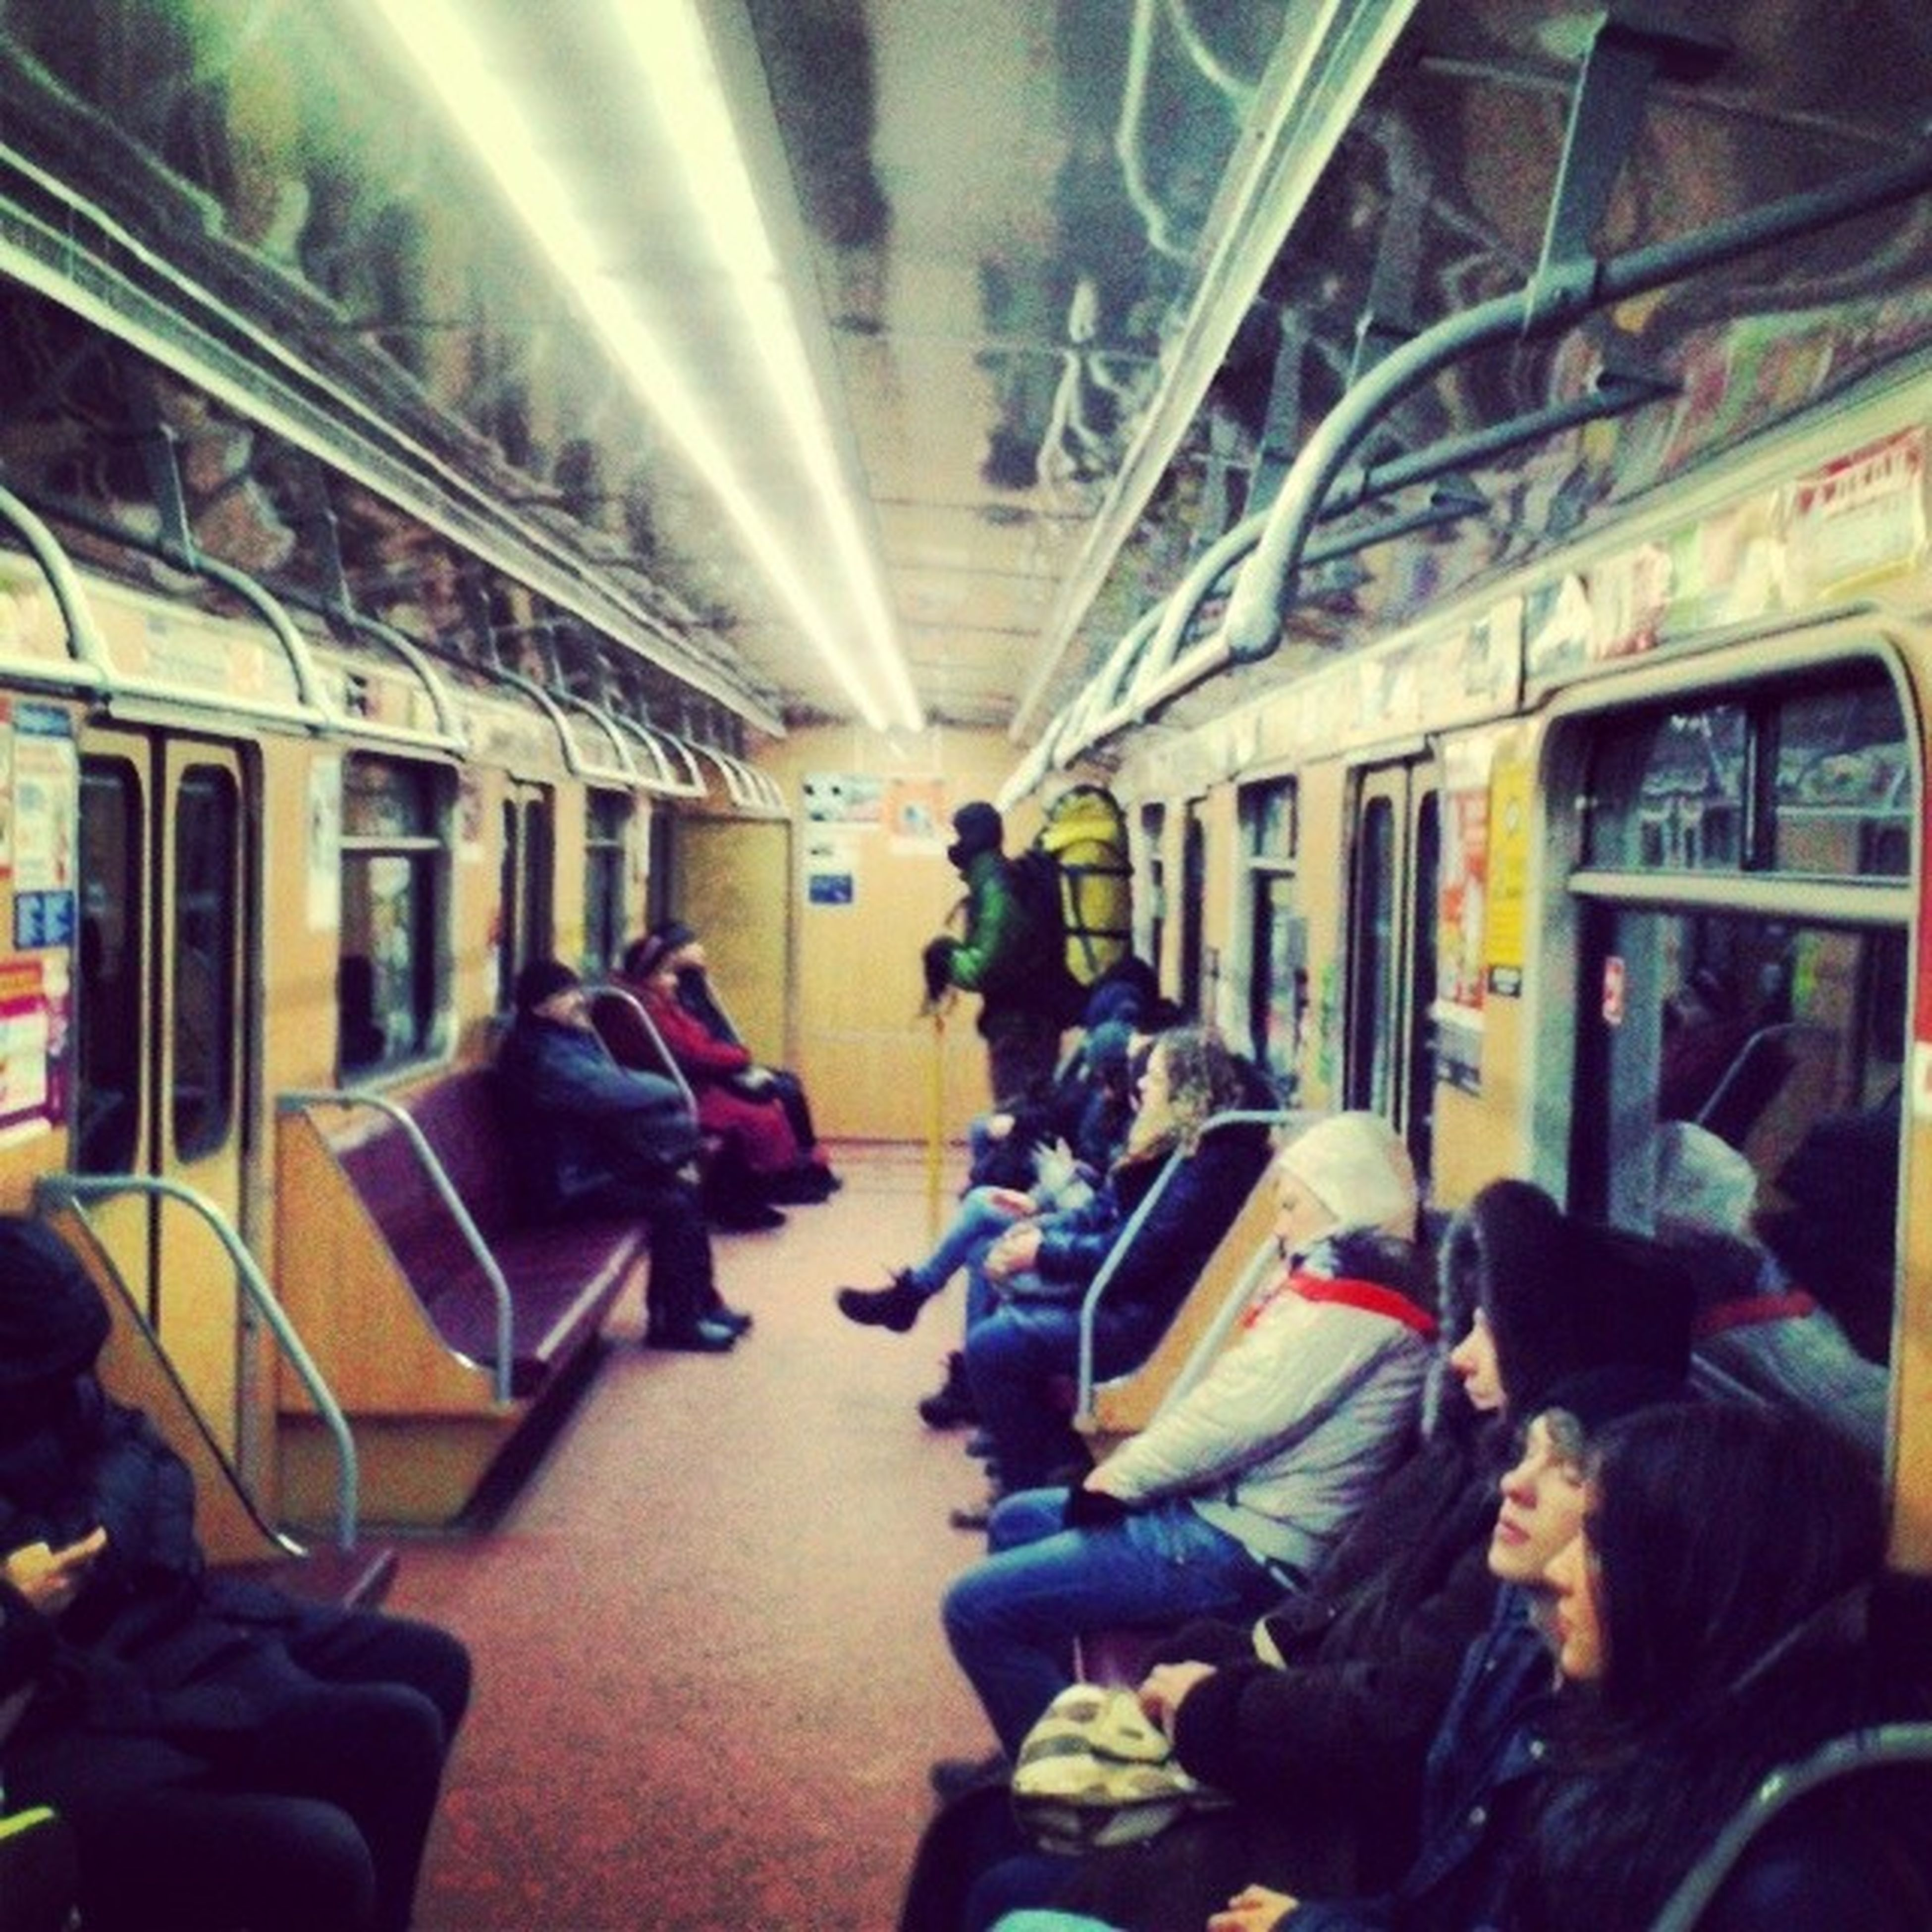 men, indoors, lifestyles, person, leisure activity, transportation, large group of people, public transportation, mode of transport, rear view, travel, medium group of people, architecture, passenger, walking, built structure, journey, vehicle interior